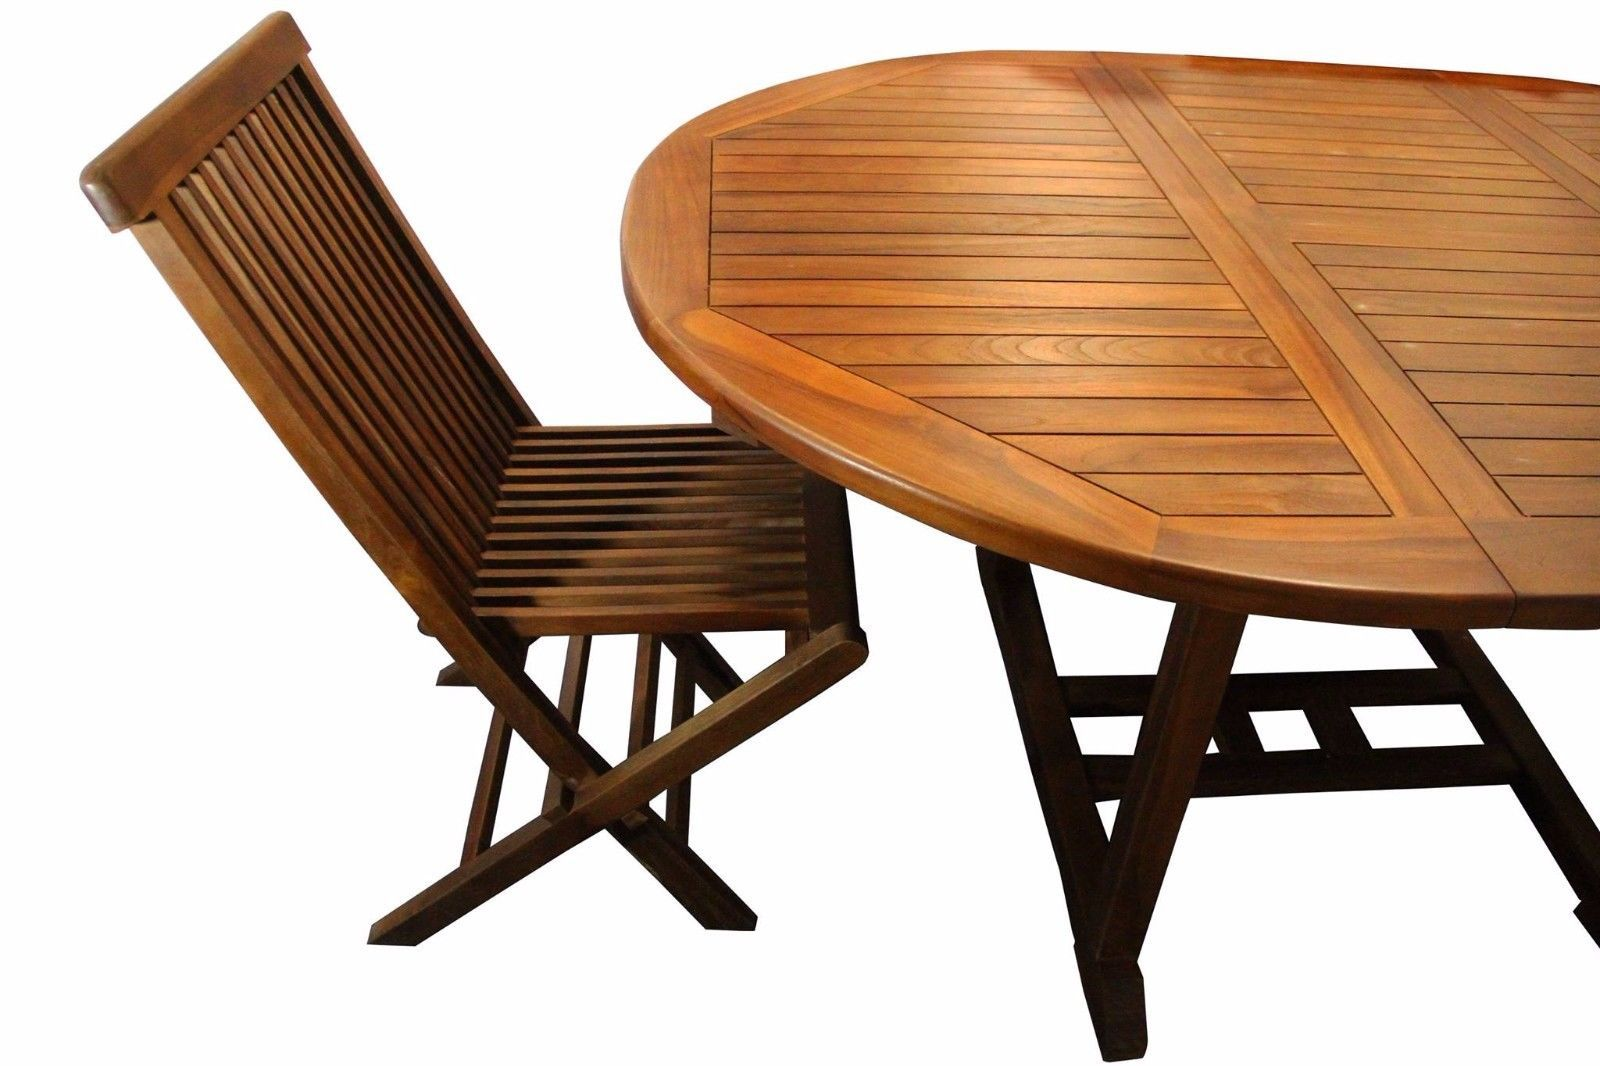 Ala Teak Indoor Outdoor Dining Waterproof Teak Wood Garden